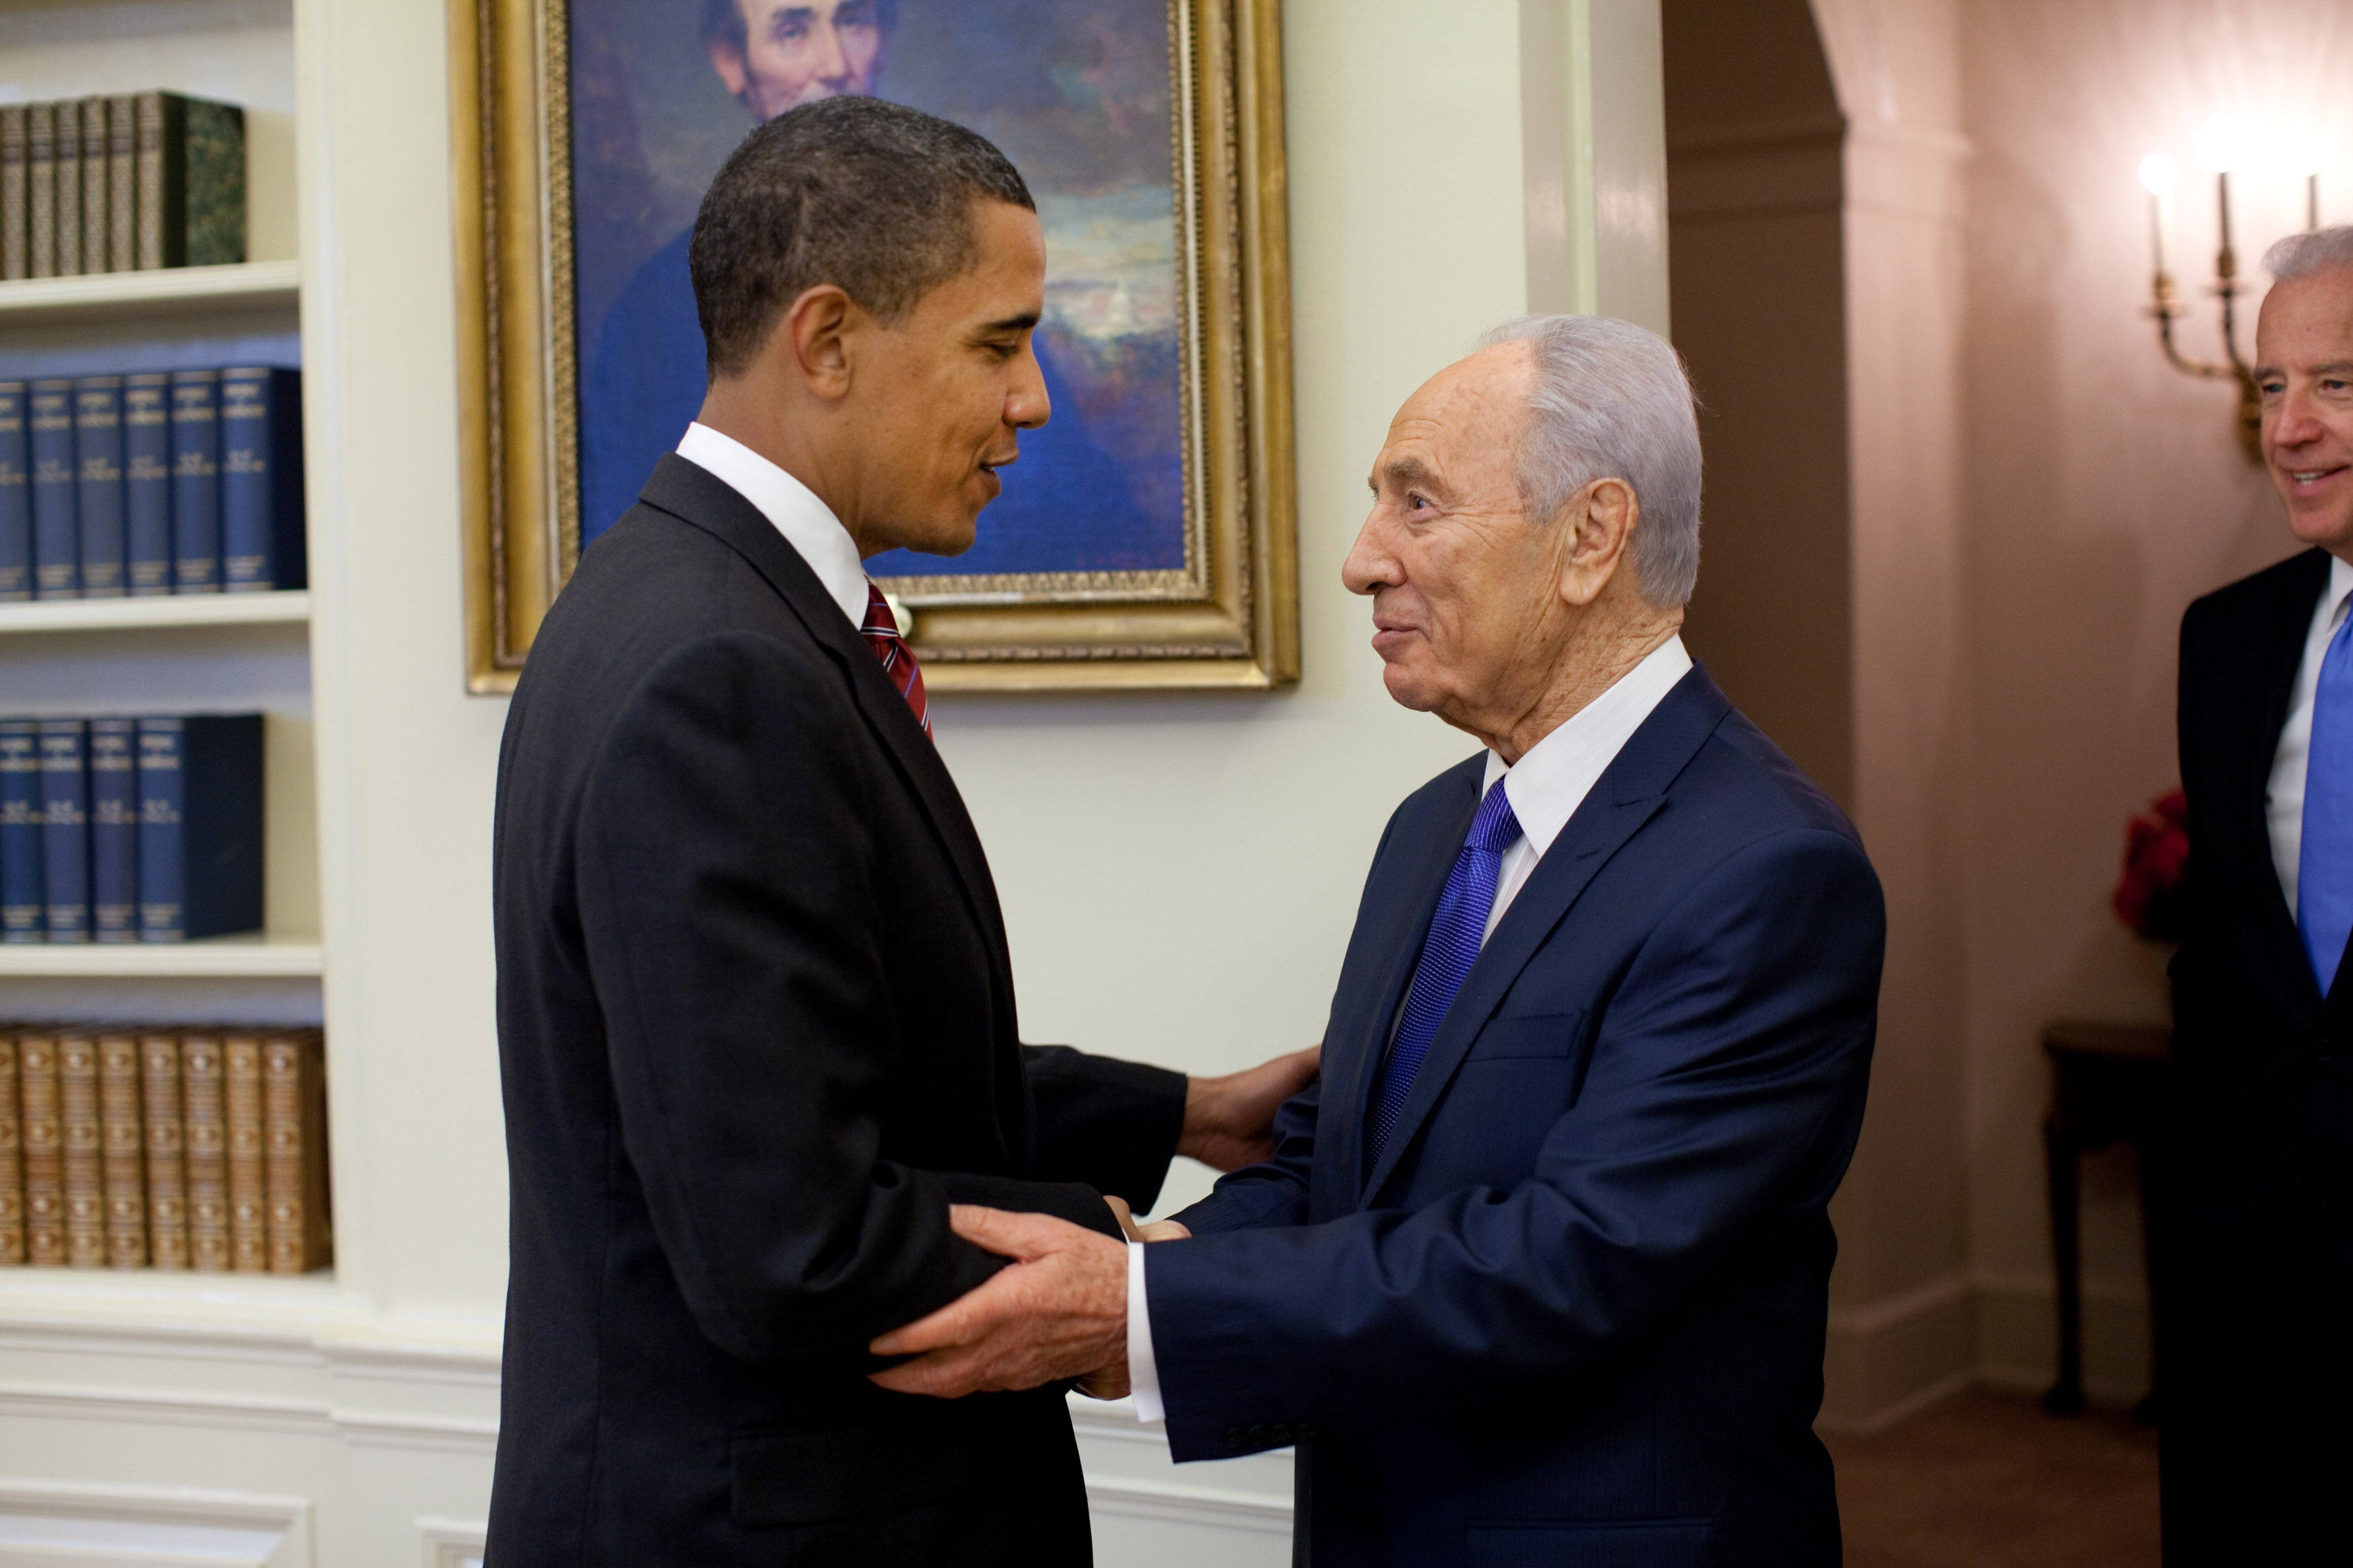 President Barack Obama welcomes Israeli President Shimon Peres in the Oval Office Tuesday, May 5, 2009. At right is Vice President Joe Biden. Official White House Photo by Pete Souza